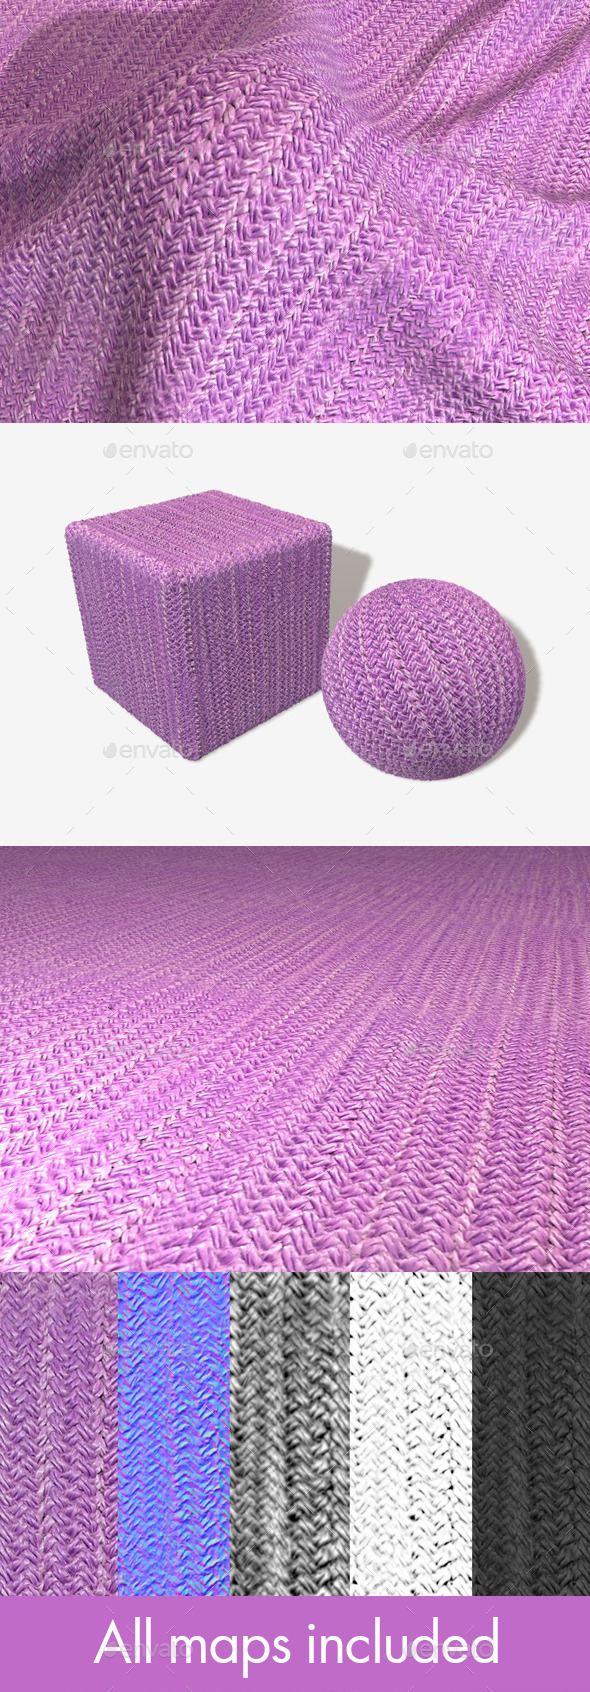 Thick Knitted Fabric Seamless Texture